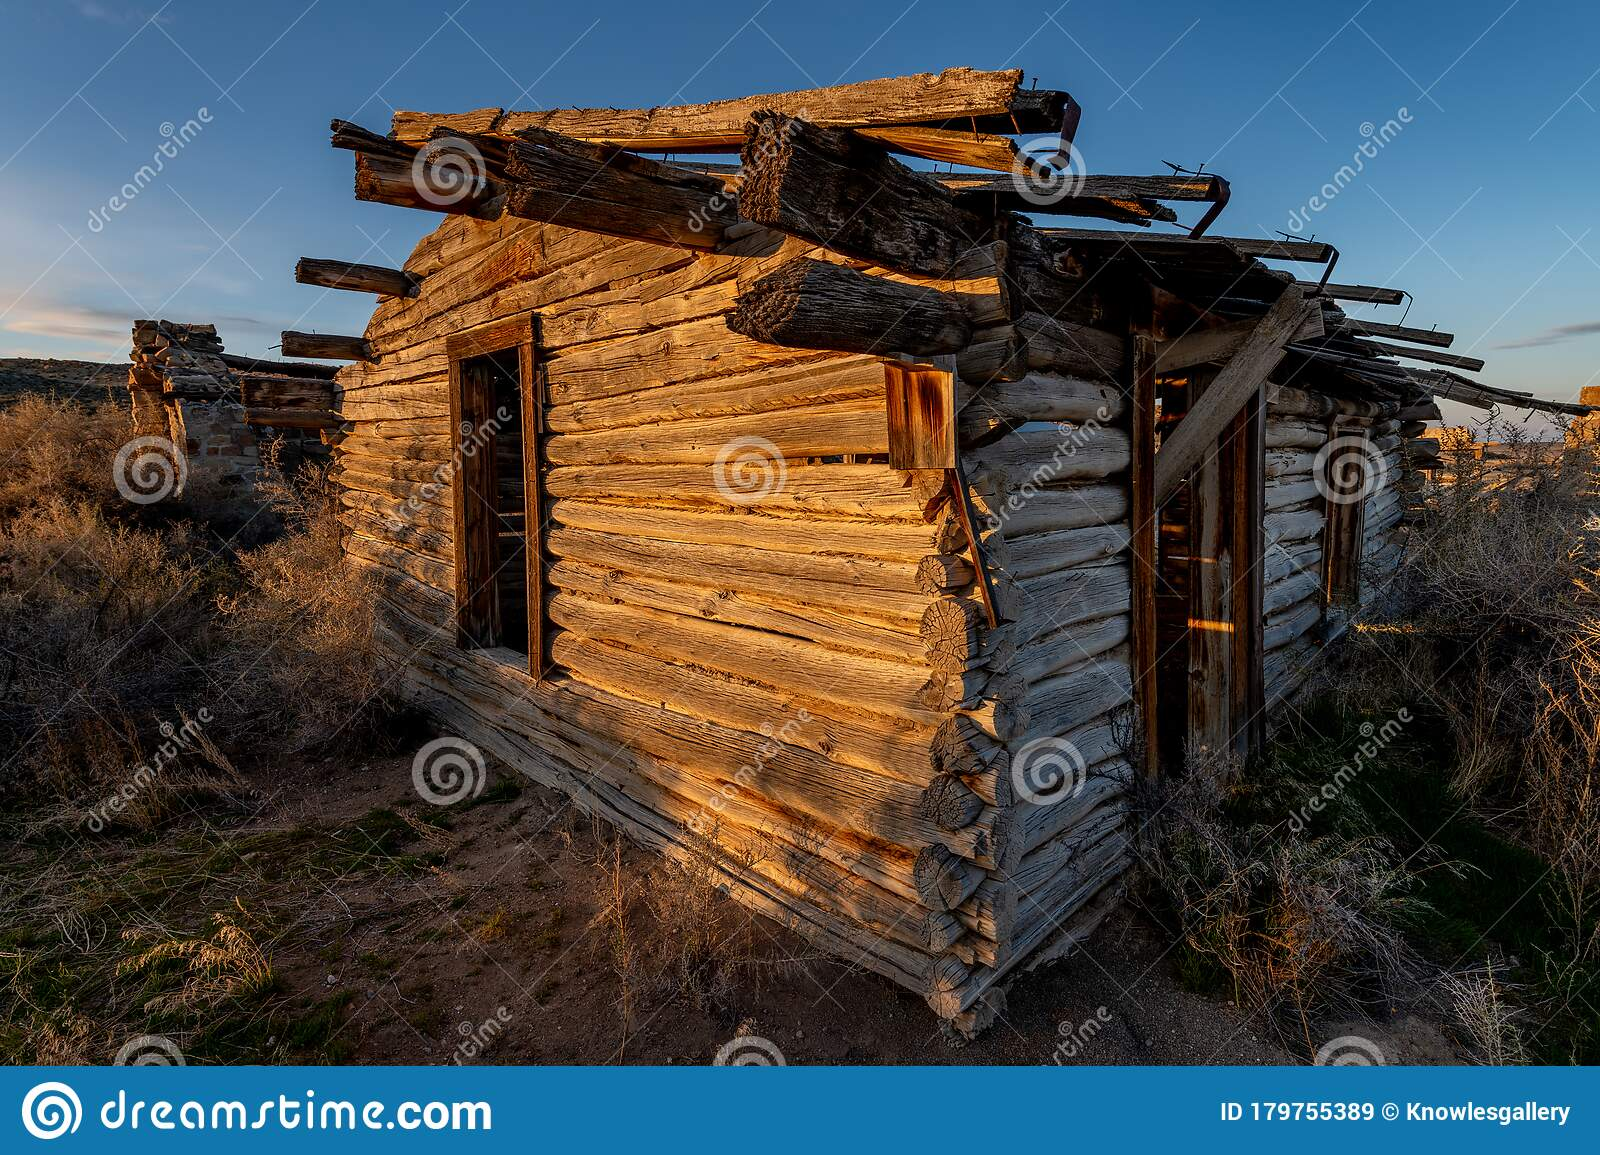 Image of: The Warm Light Of Sunset Paints A Rustic Log Cabin Stock Image Image Of Outdoor Building 179755389